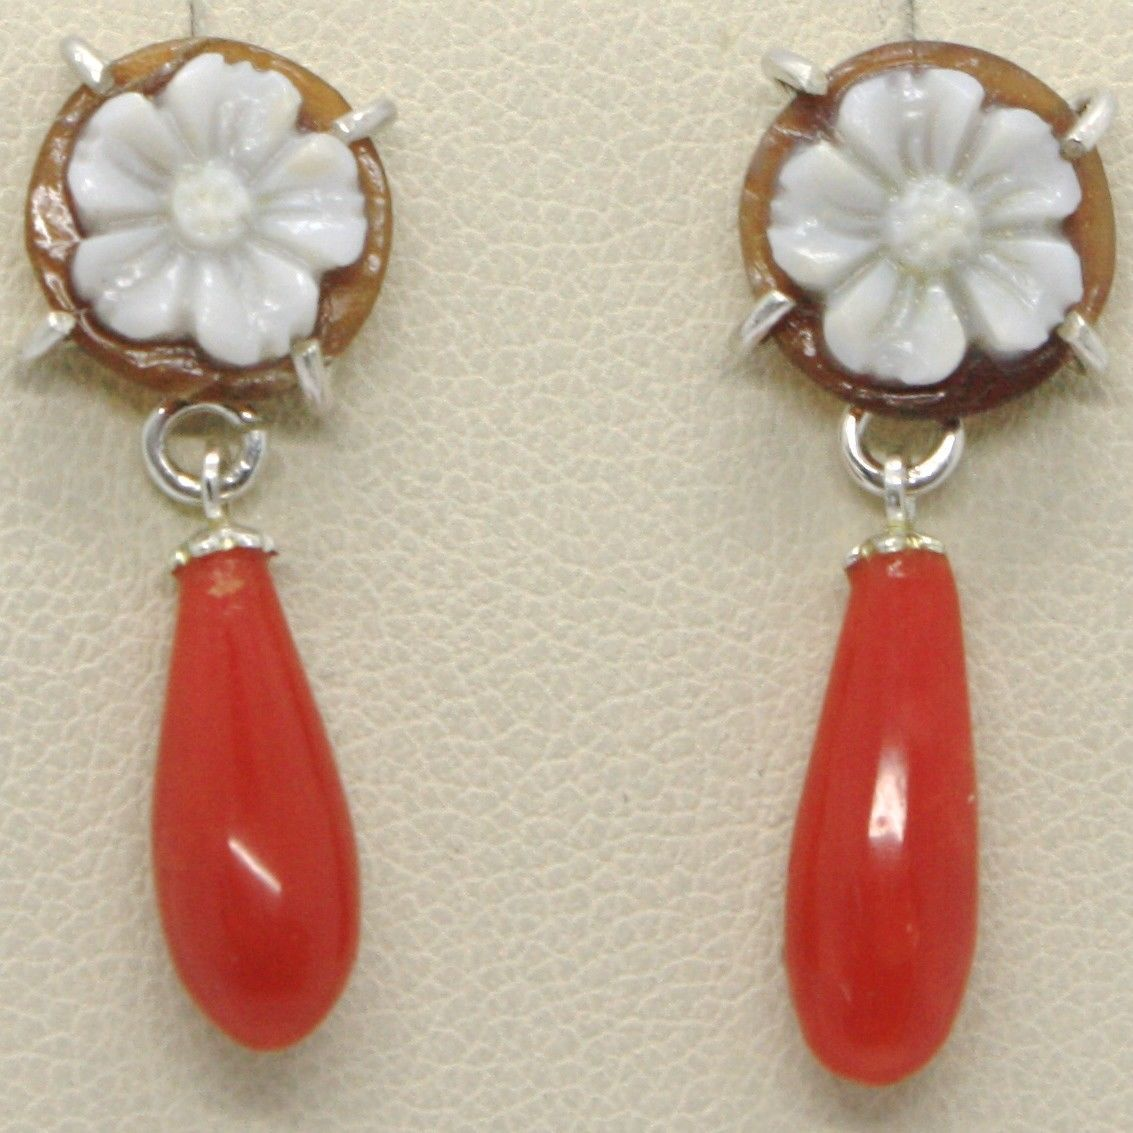 EARRINGS SILVER 925 WITH DROP OF RED CORAL NATURAL AND CAMEO CAMEO